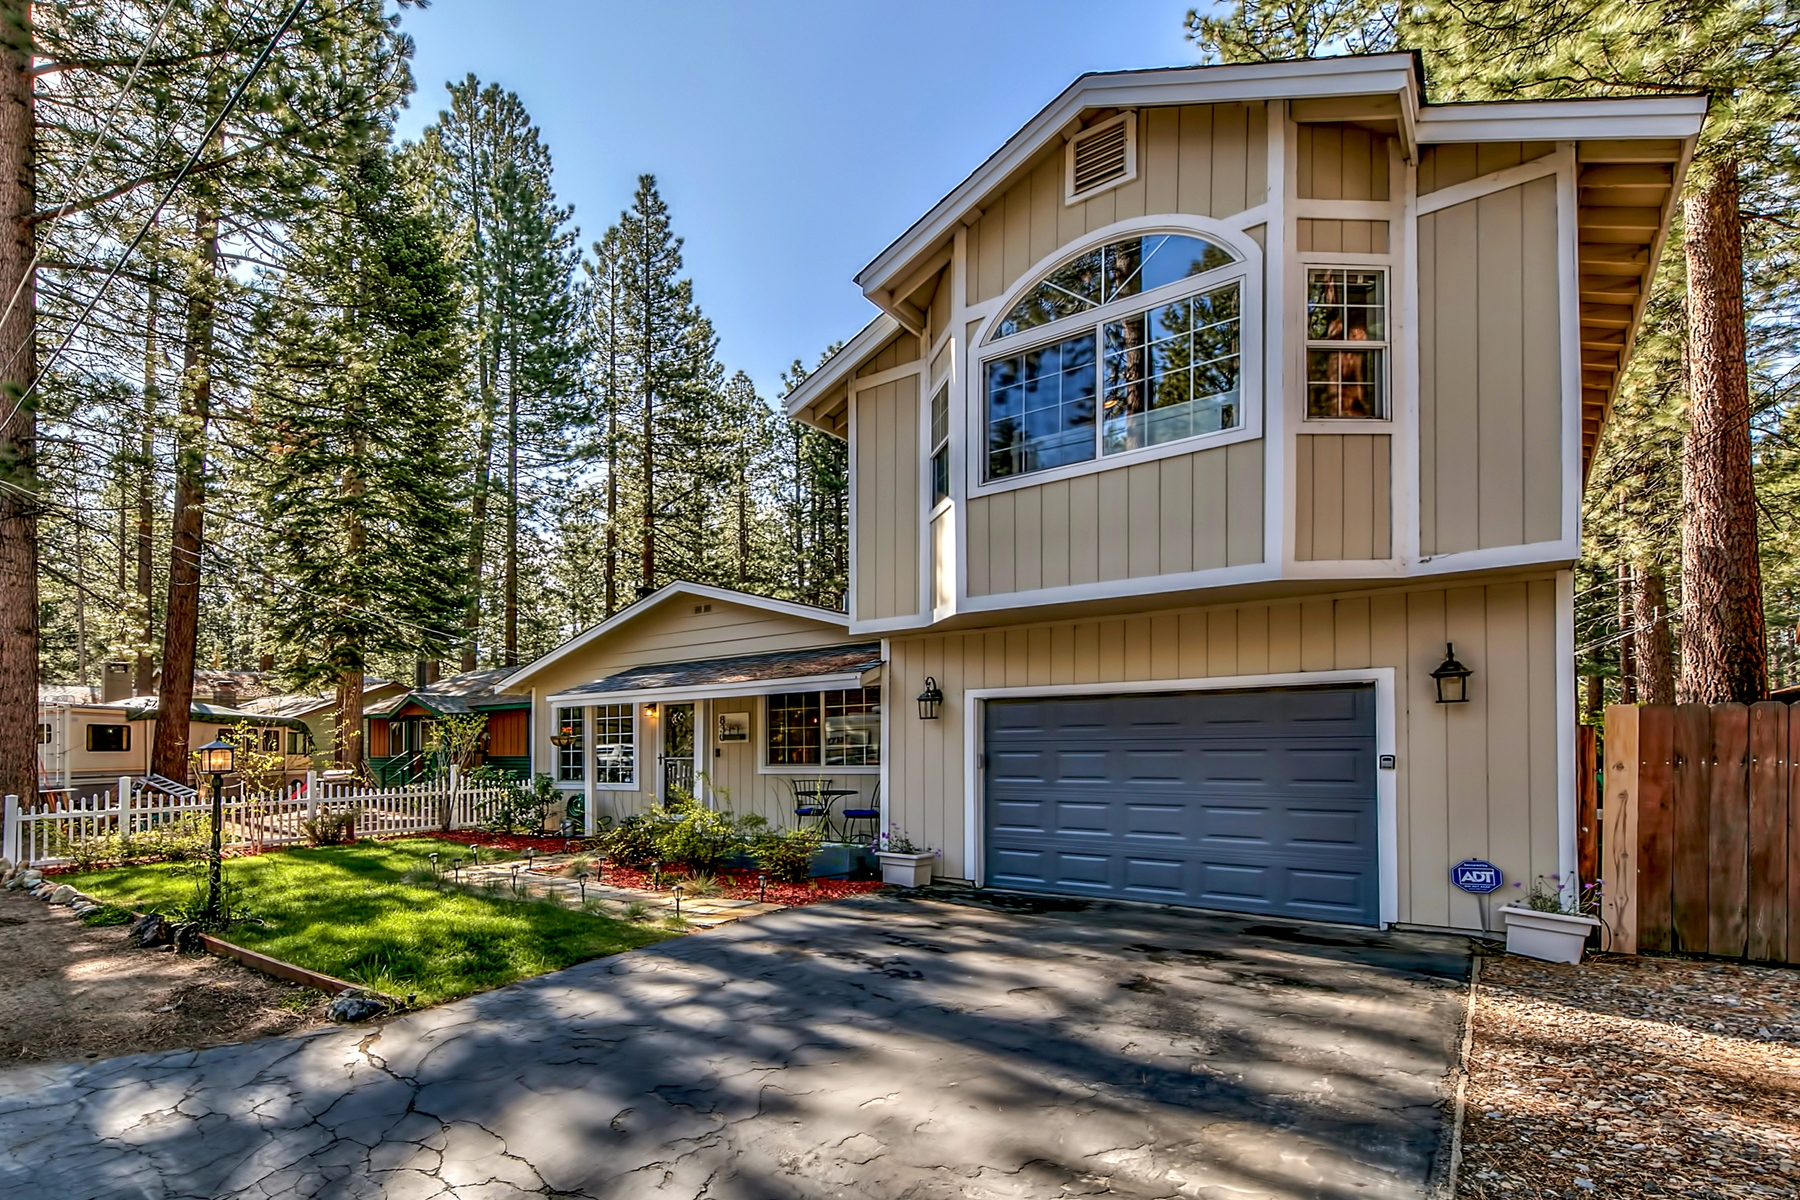 Property for Active at 830 Paloma Ave, South Lake Tahoe, CA 96150 830 Paloma Ave South Lake Tahoe, California 96150 United States